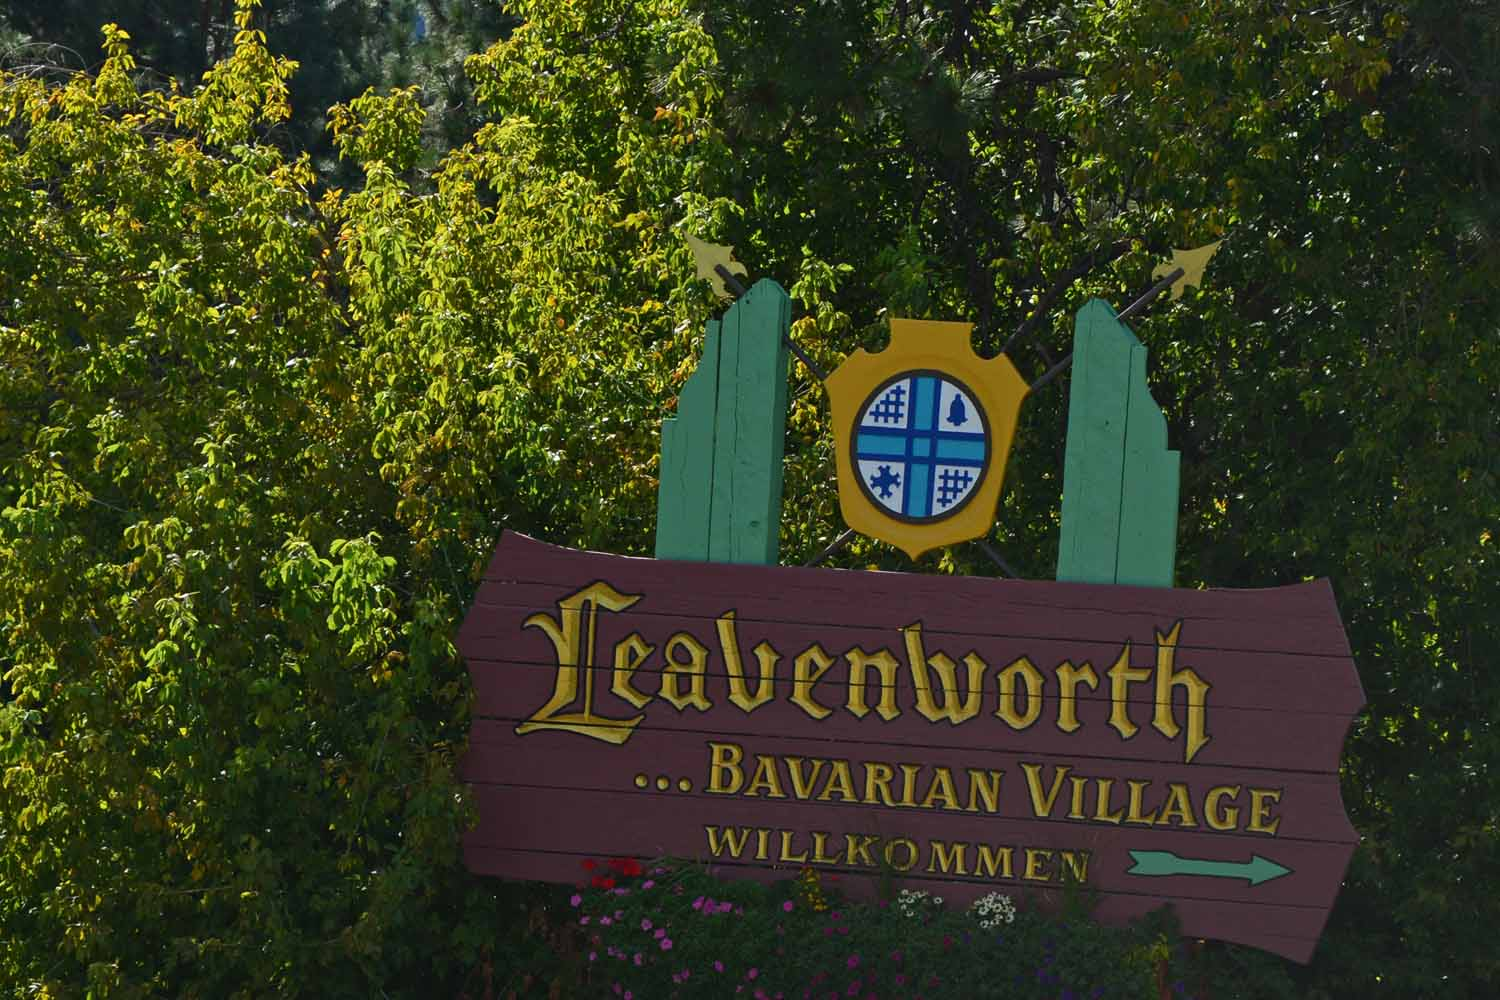 We heard about Leavenworth last time we visited Seattle a decade back.  It is known for its strong German theme.  We planned an overnight.  There was plenty to do and we could have used one more day here.